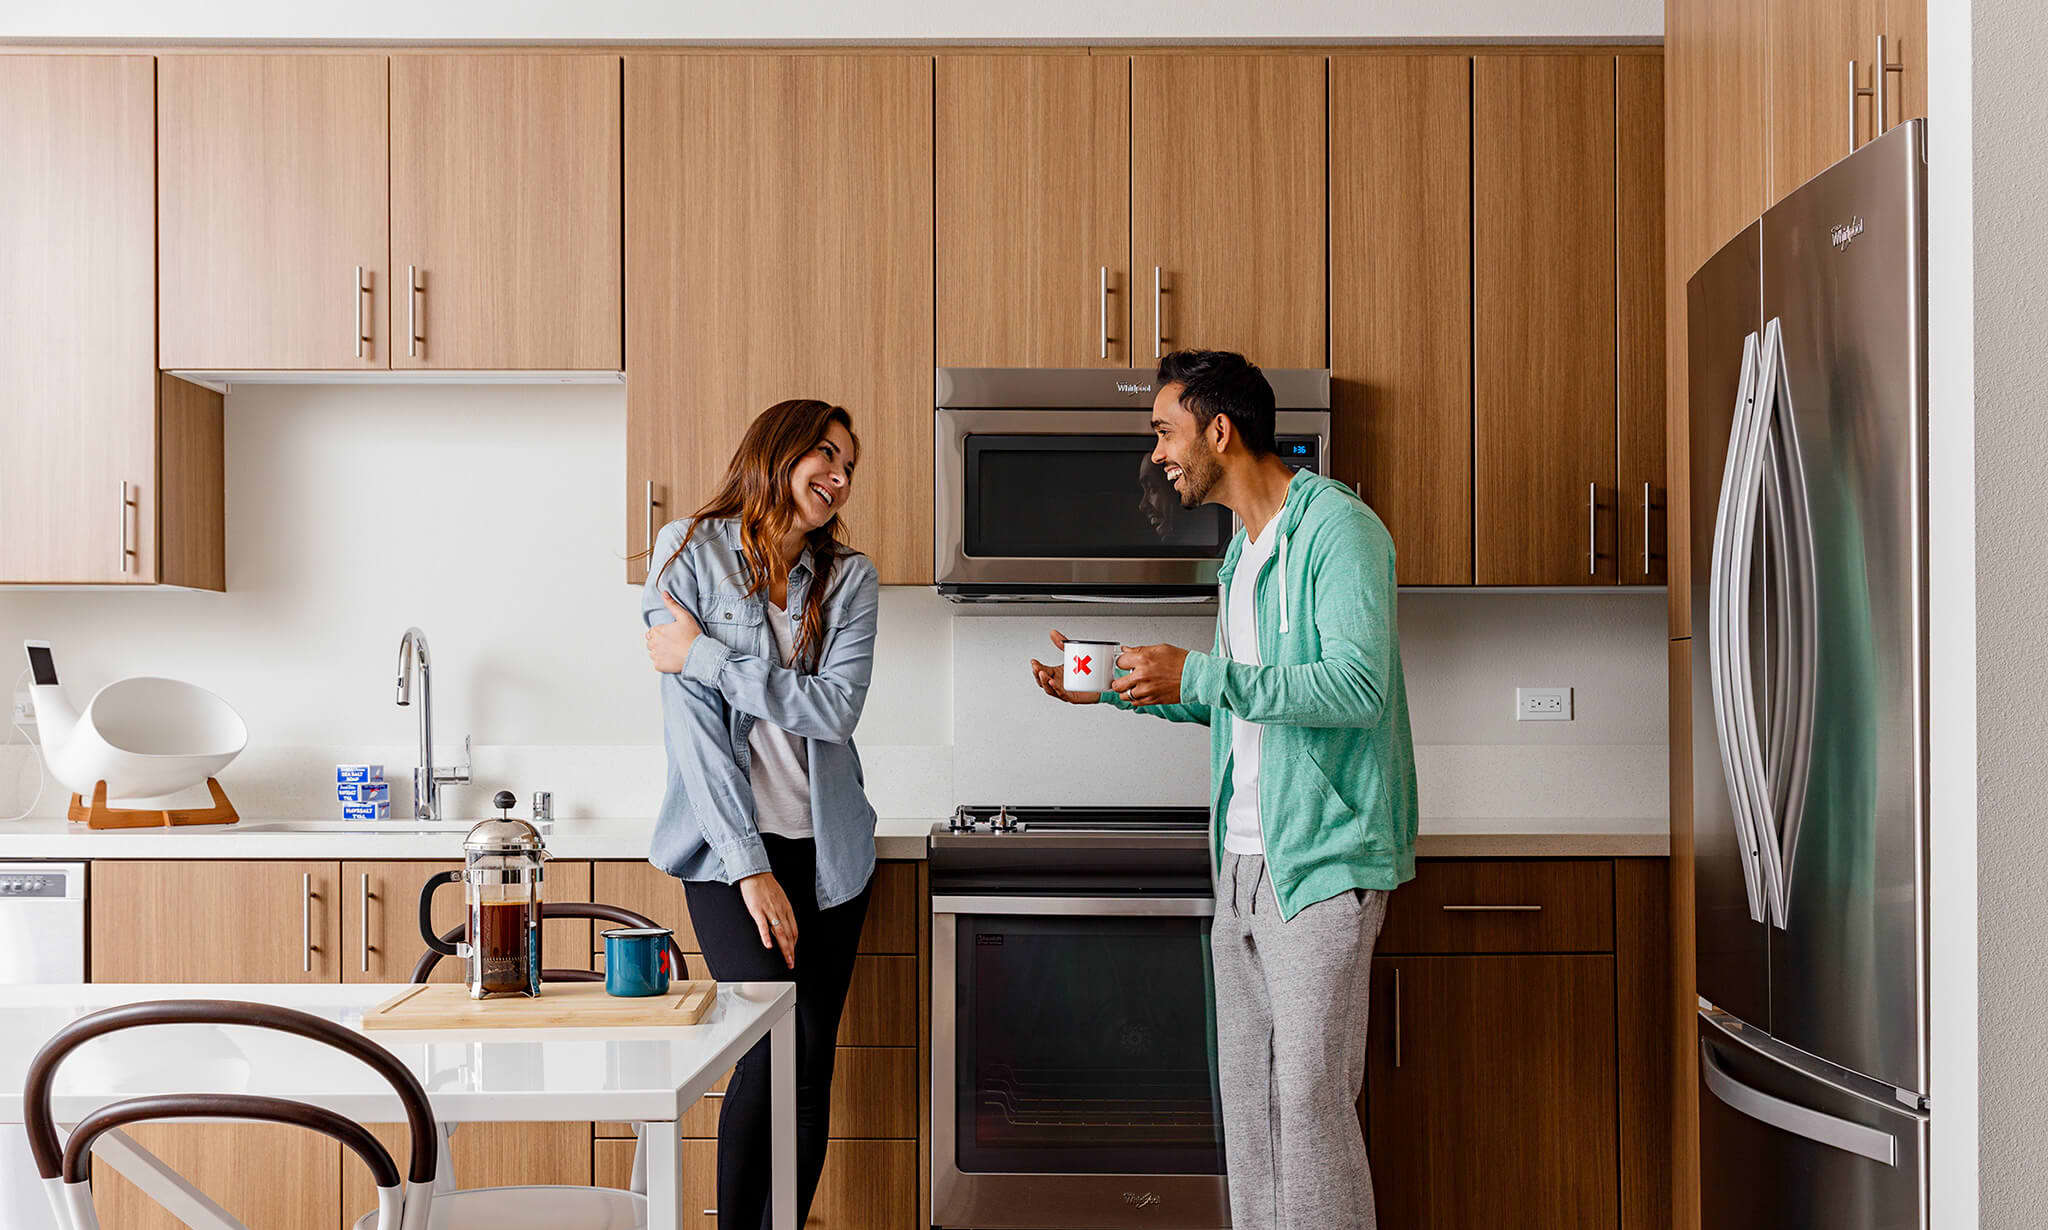 A couple laughing in an apartment kitchen, showing how home is personal.